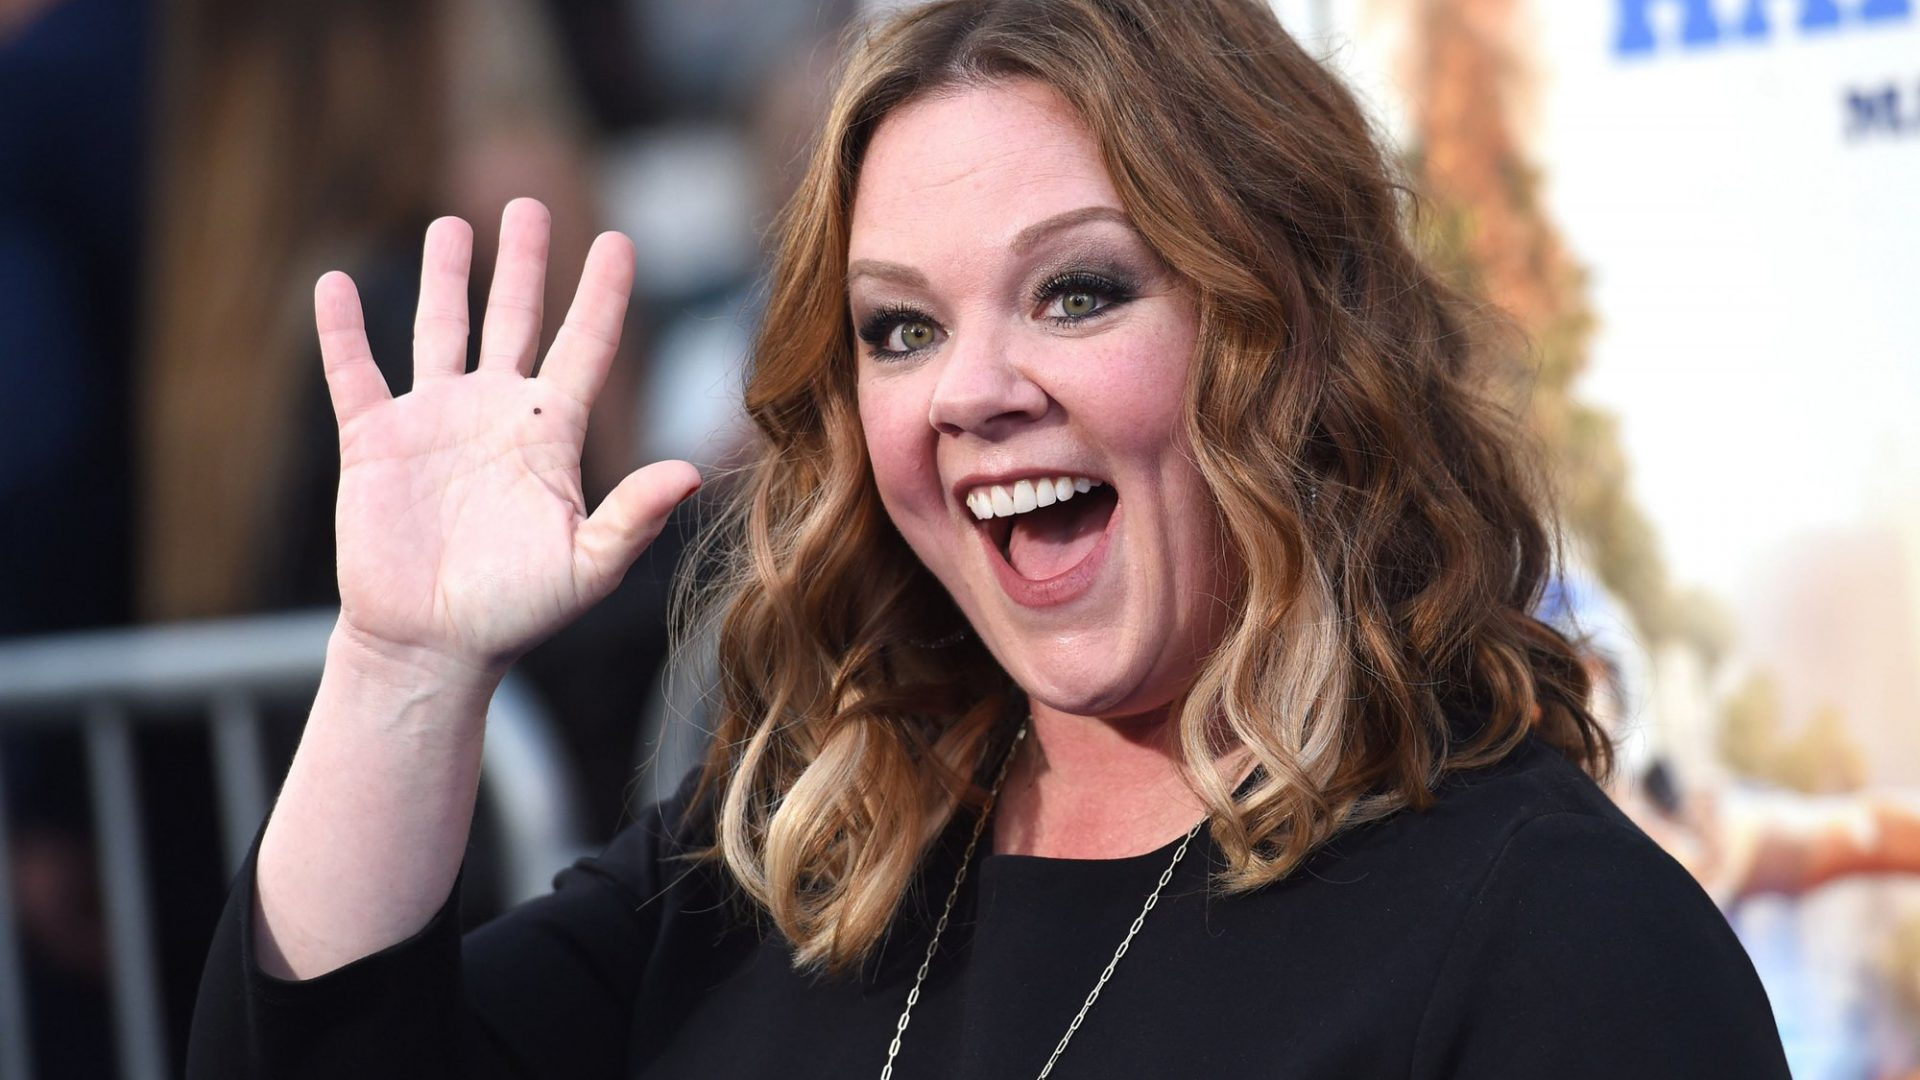 All about Melissa McCarthy, top actress in 'Starling' and 'Nine Perfect Strangers'